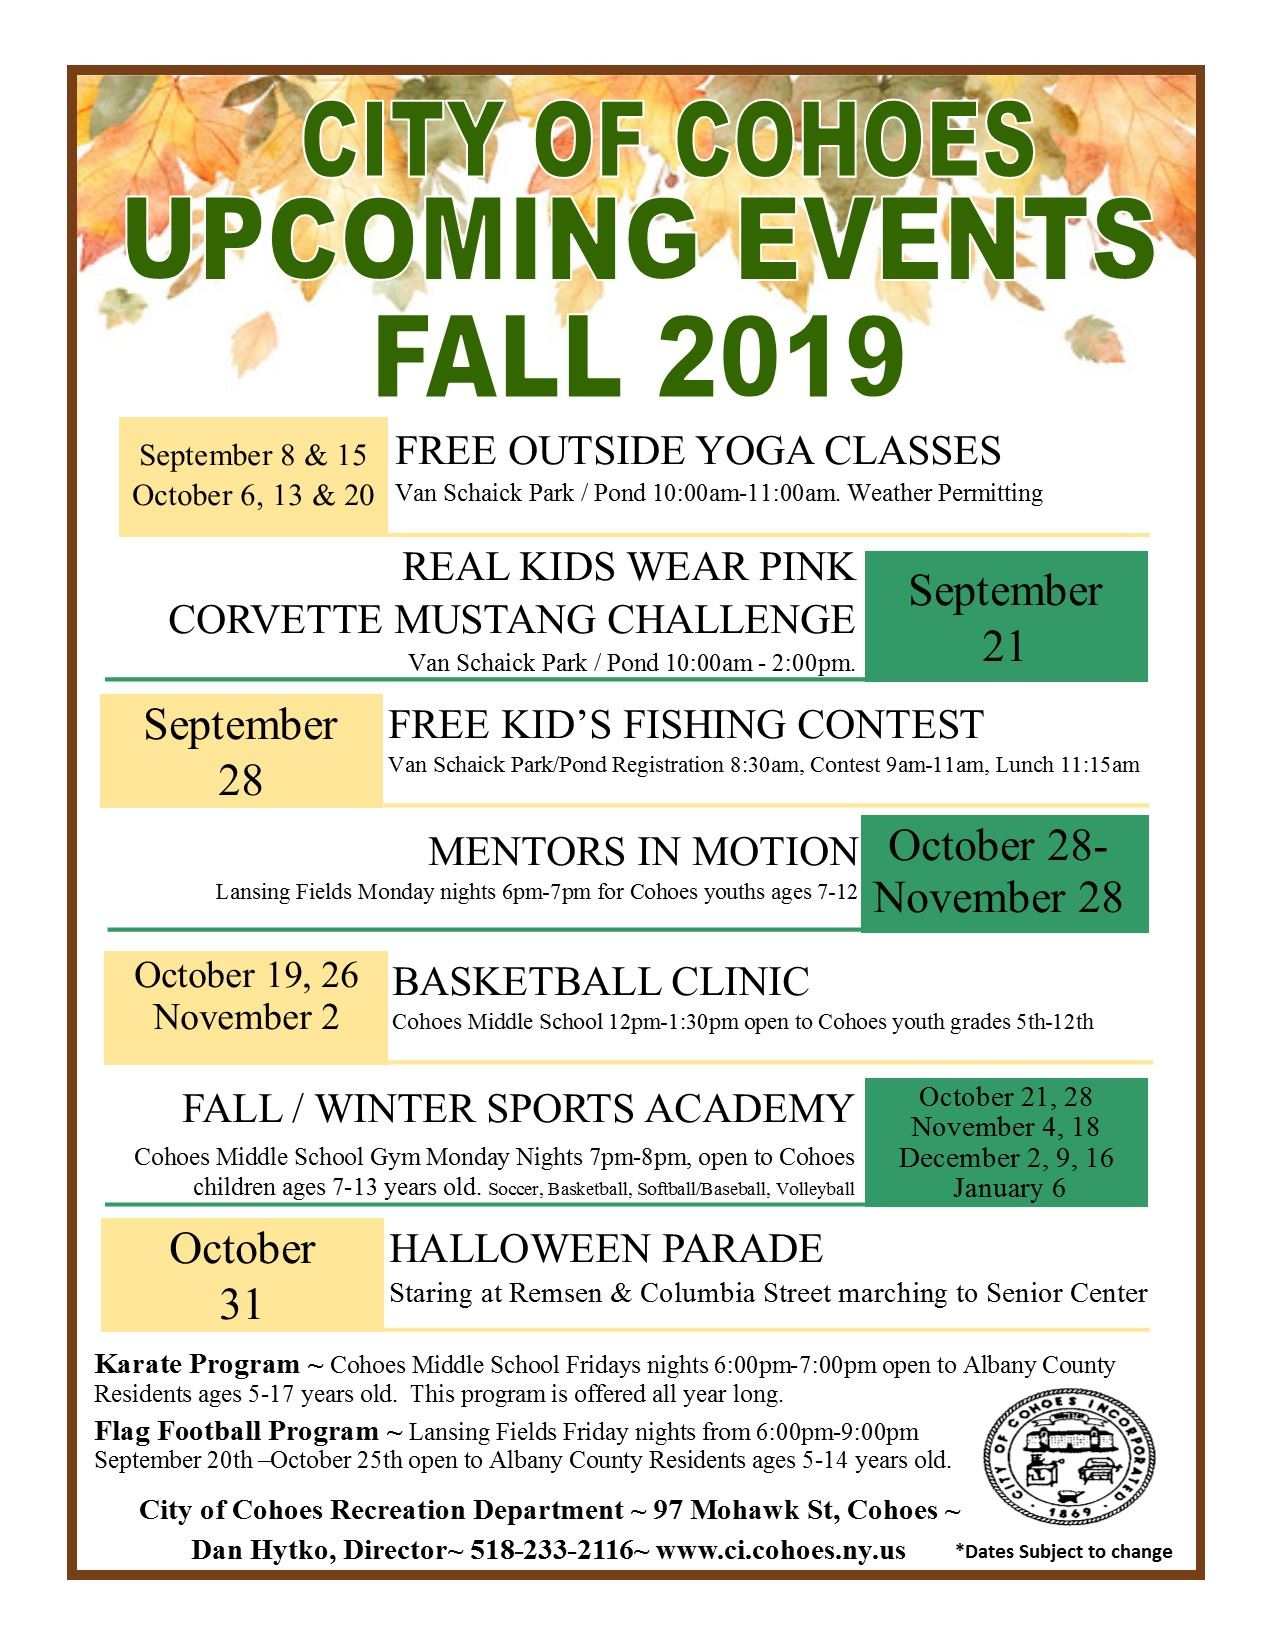 Upcoming events fall 2019